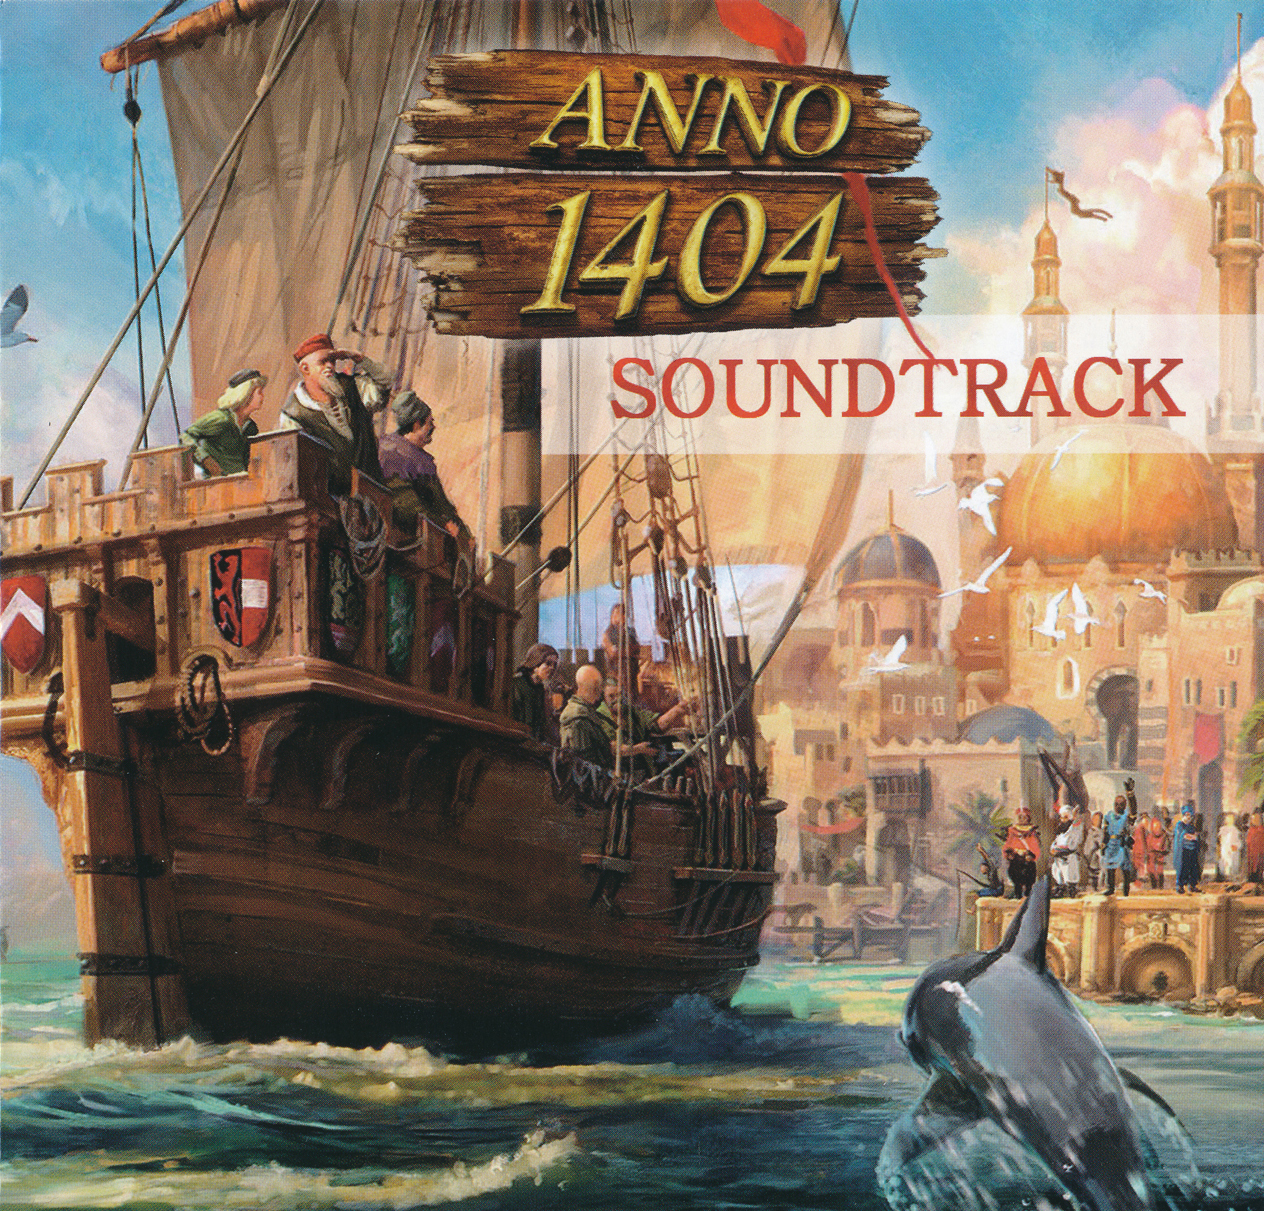 Anno 1404 Soundtrack Soundtrack from Anno 1404 Soundtrack